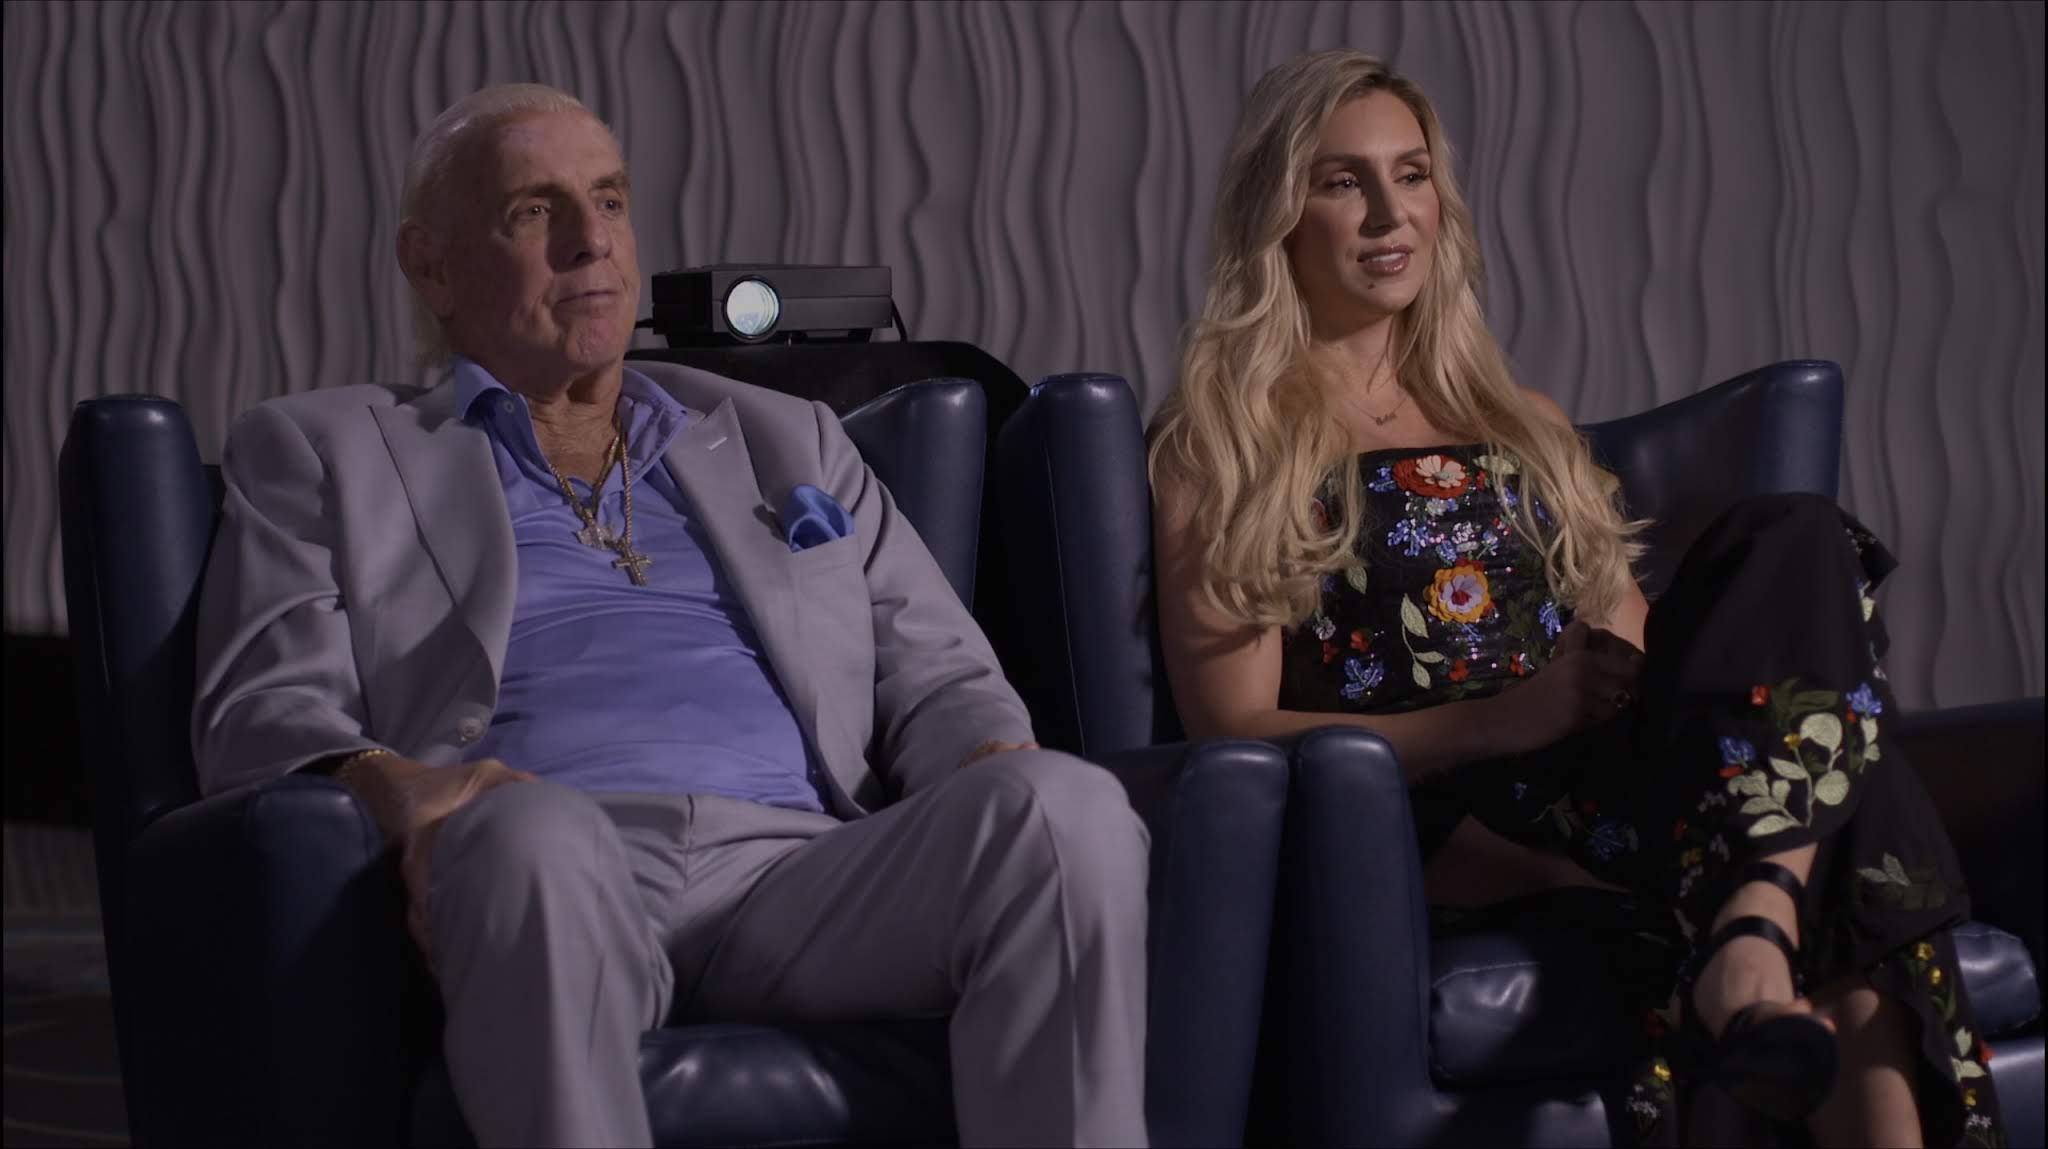 RF2 Atlanta Crew Captures Interview with Ric and Charlotte Flair